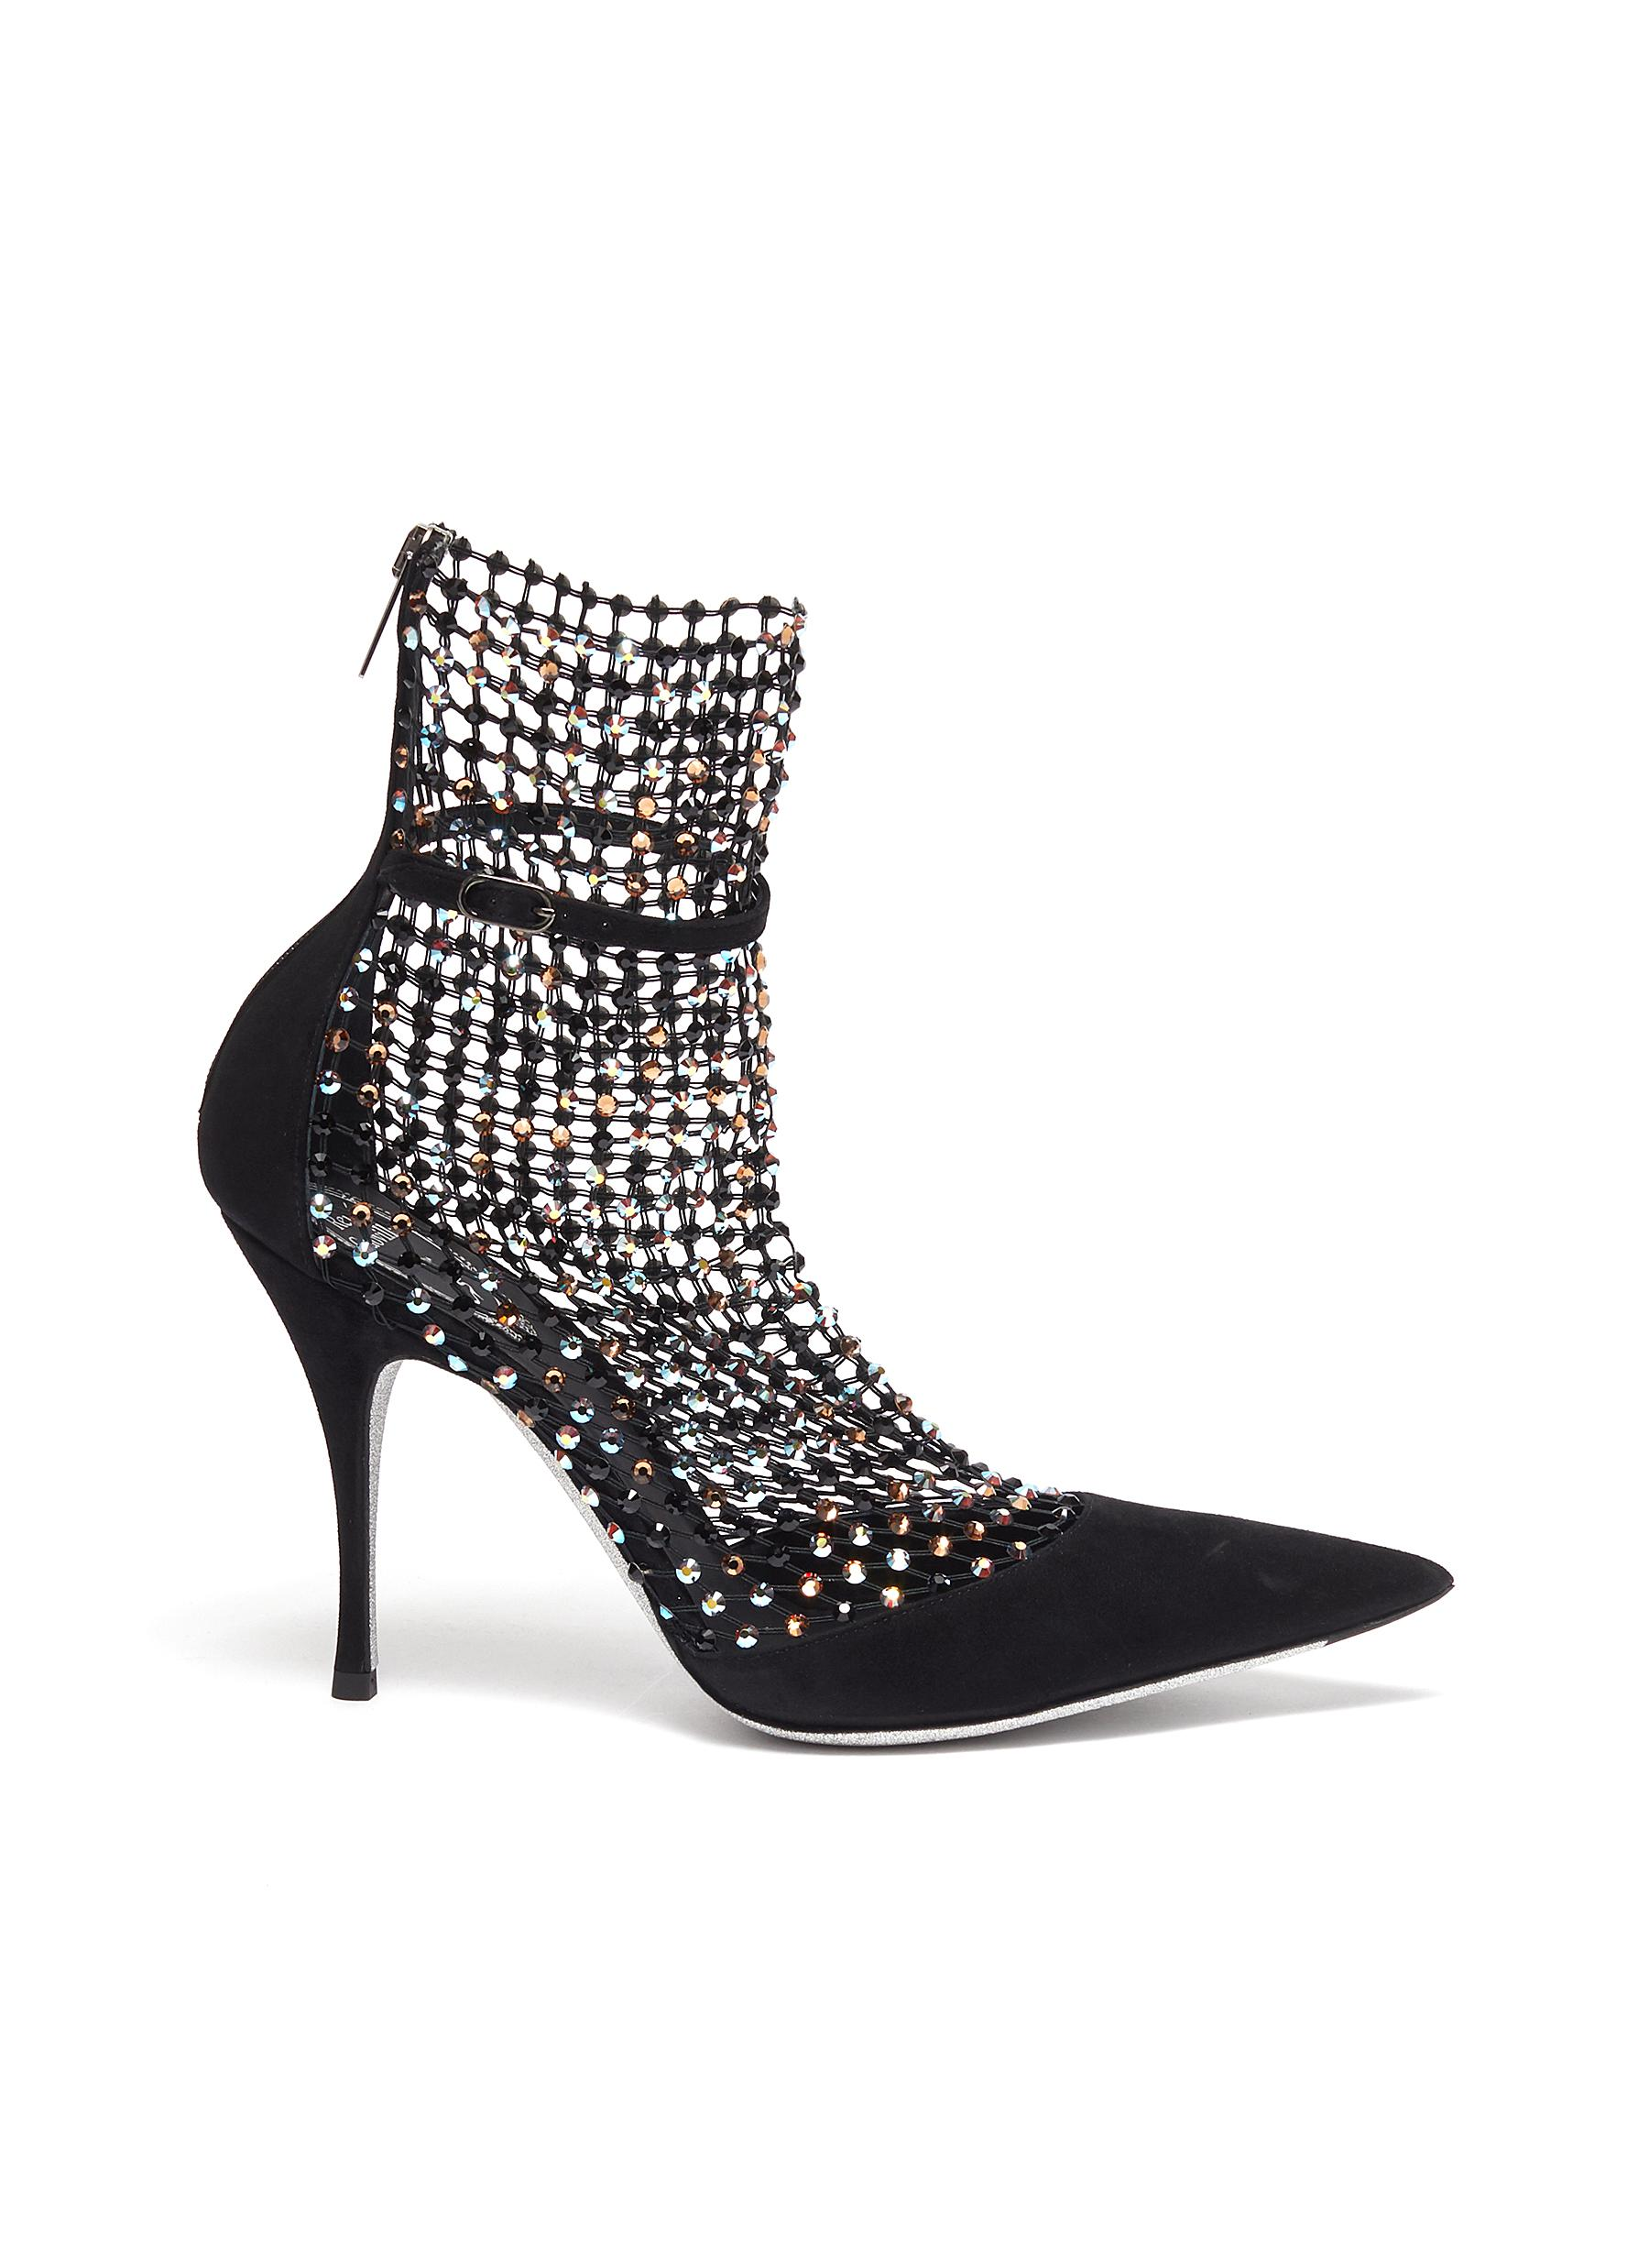 René Caovilla High Heels Strass fishnet overlay suede pumps